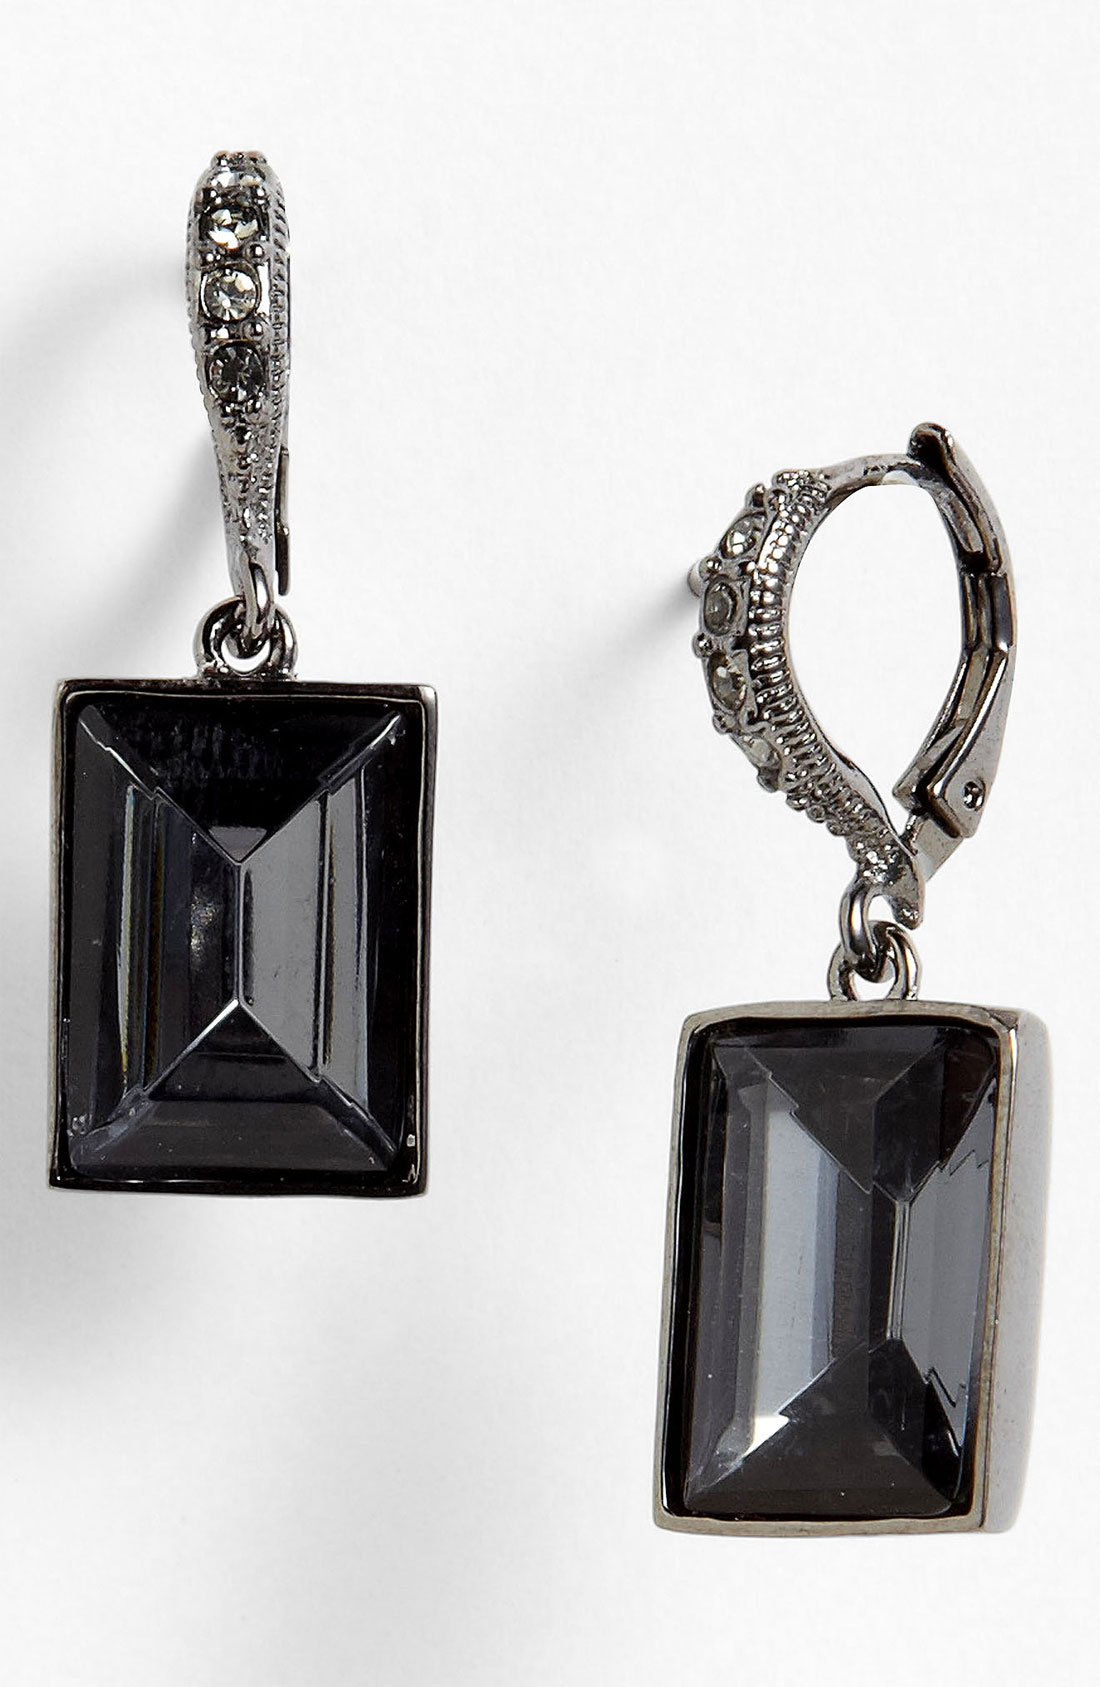 givenchy drop earrings in black hematite black